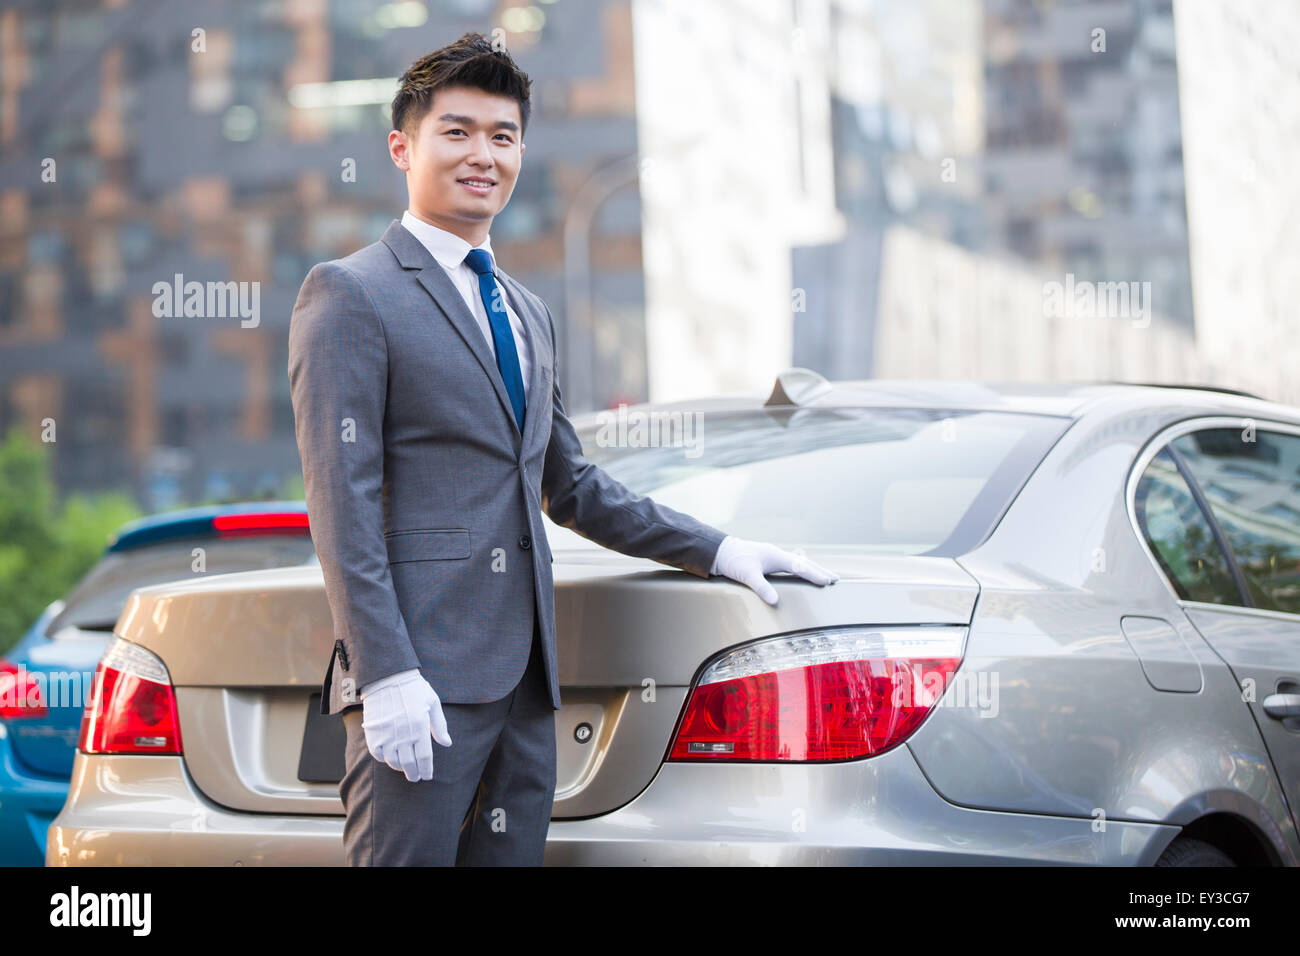 Chauffeur standing next to the car - Stock Image